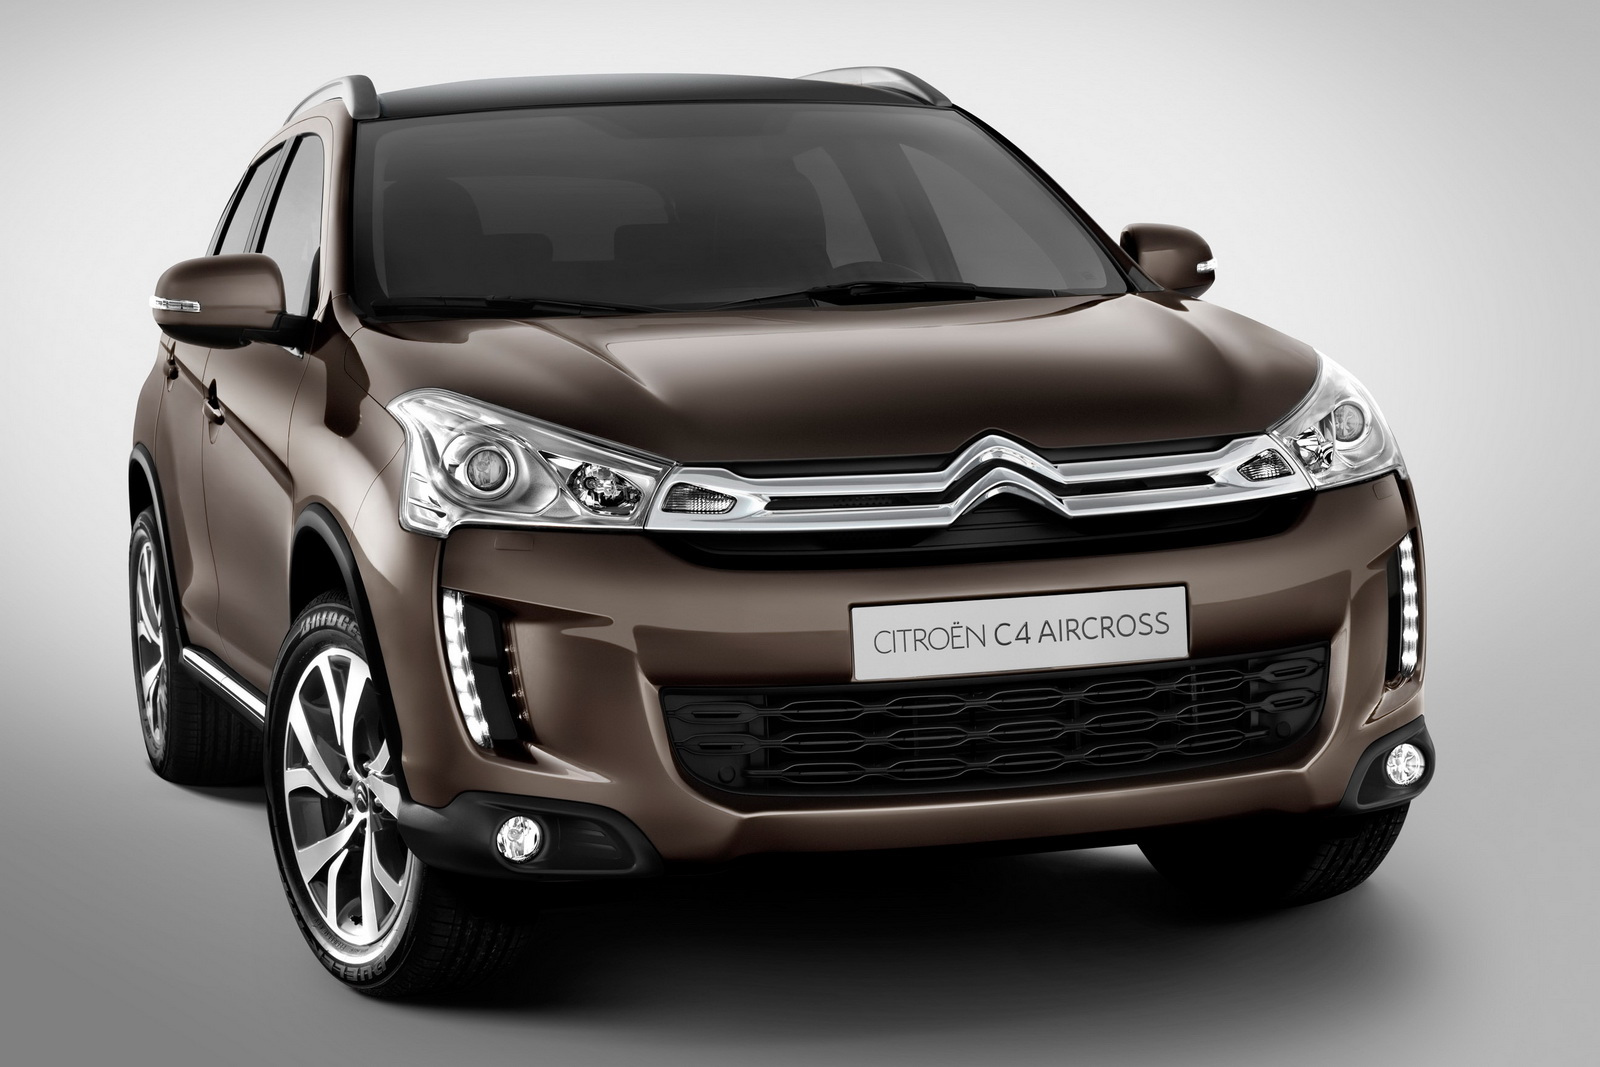 2012 Citroen C4 Aircross 2 New 2012 Citroen C4 AIRCROSS: PSAs Takes on the Mitsubishi ASX with its new version